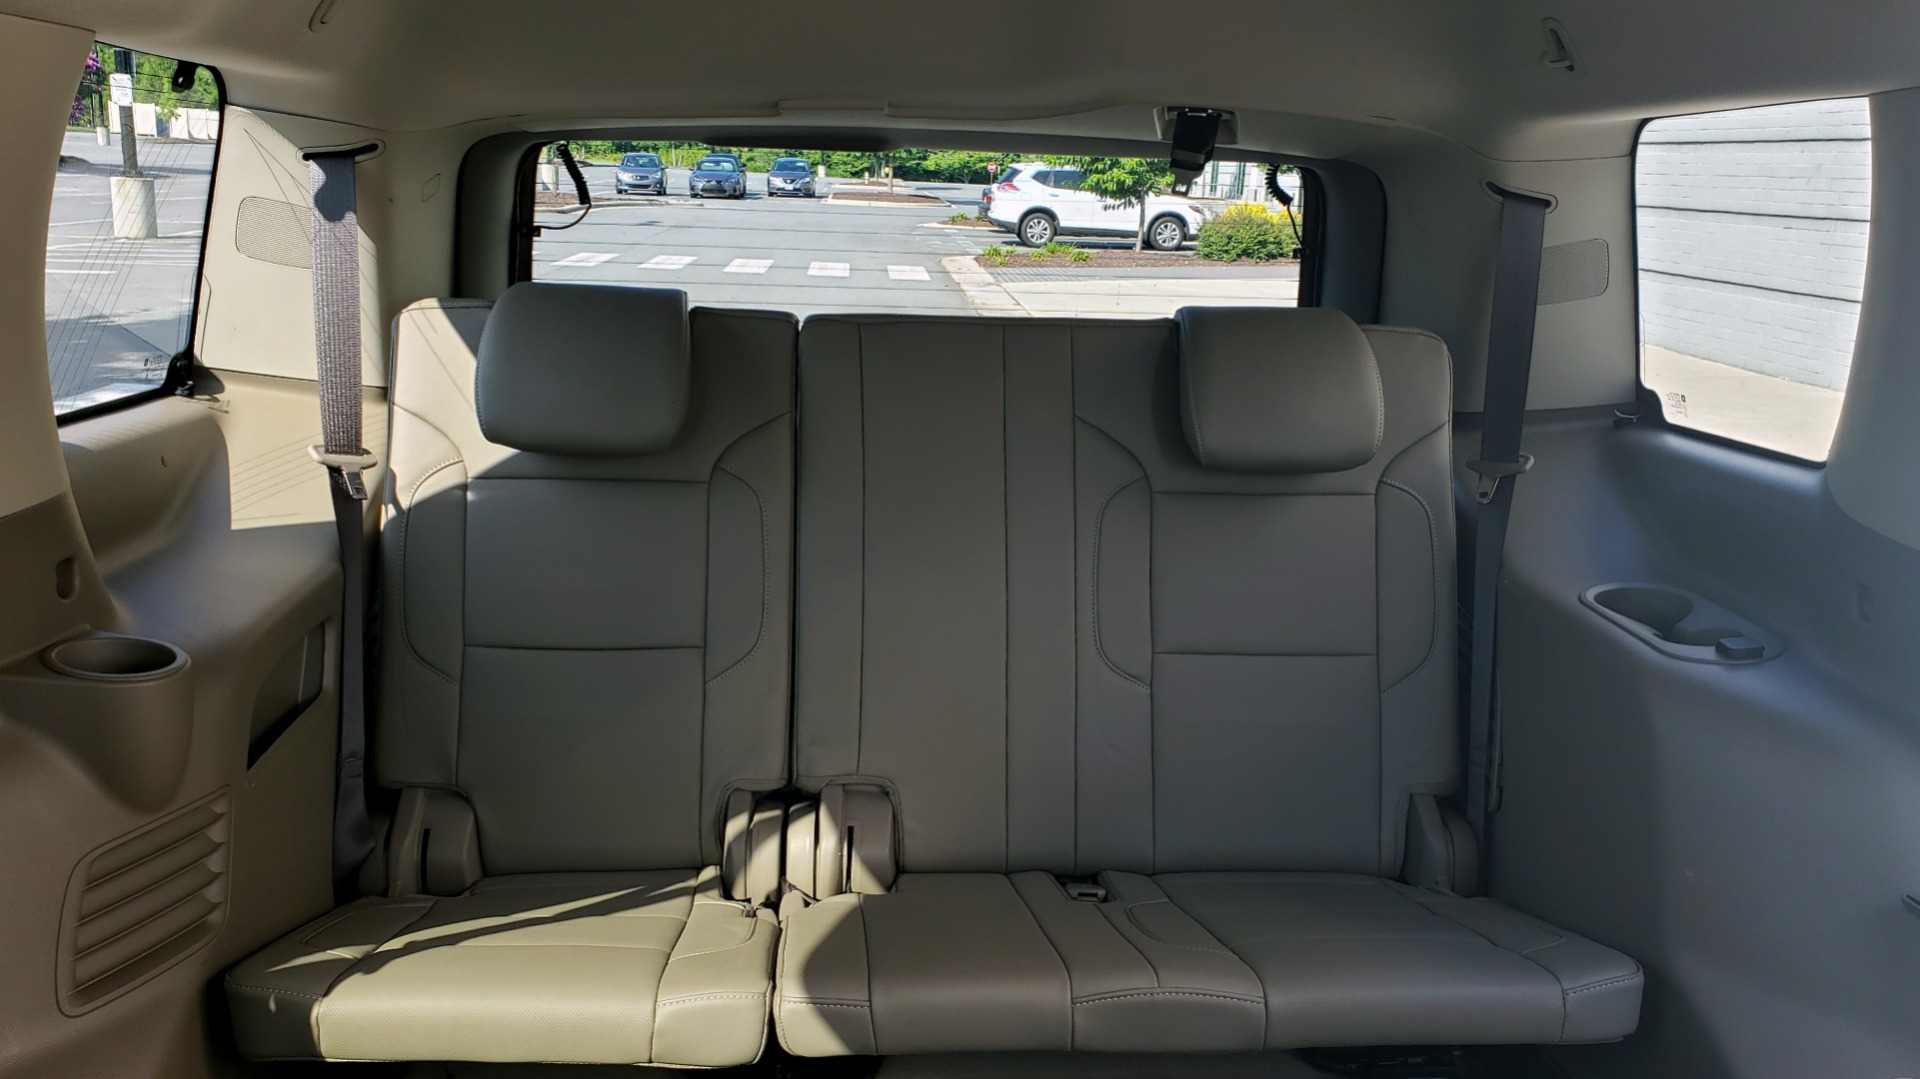 Used 2018 Chevrolet TAHOE PREMIER 4X4 / NAV / BOSE / SUNROOF / ENT SYS / 3-ROW / REARVIEW for sale $55,995 at Formula Imports in Charlotte NC 28227 24